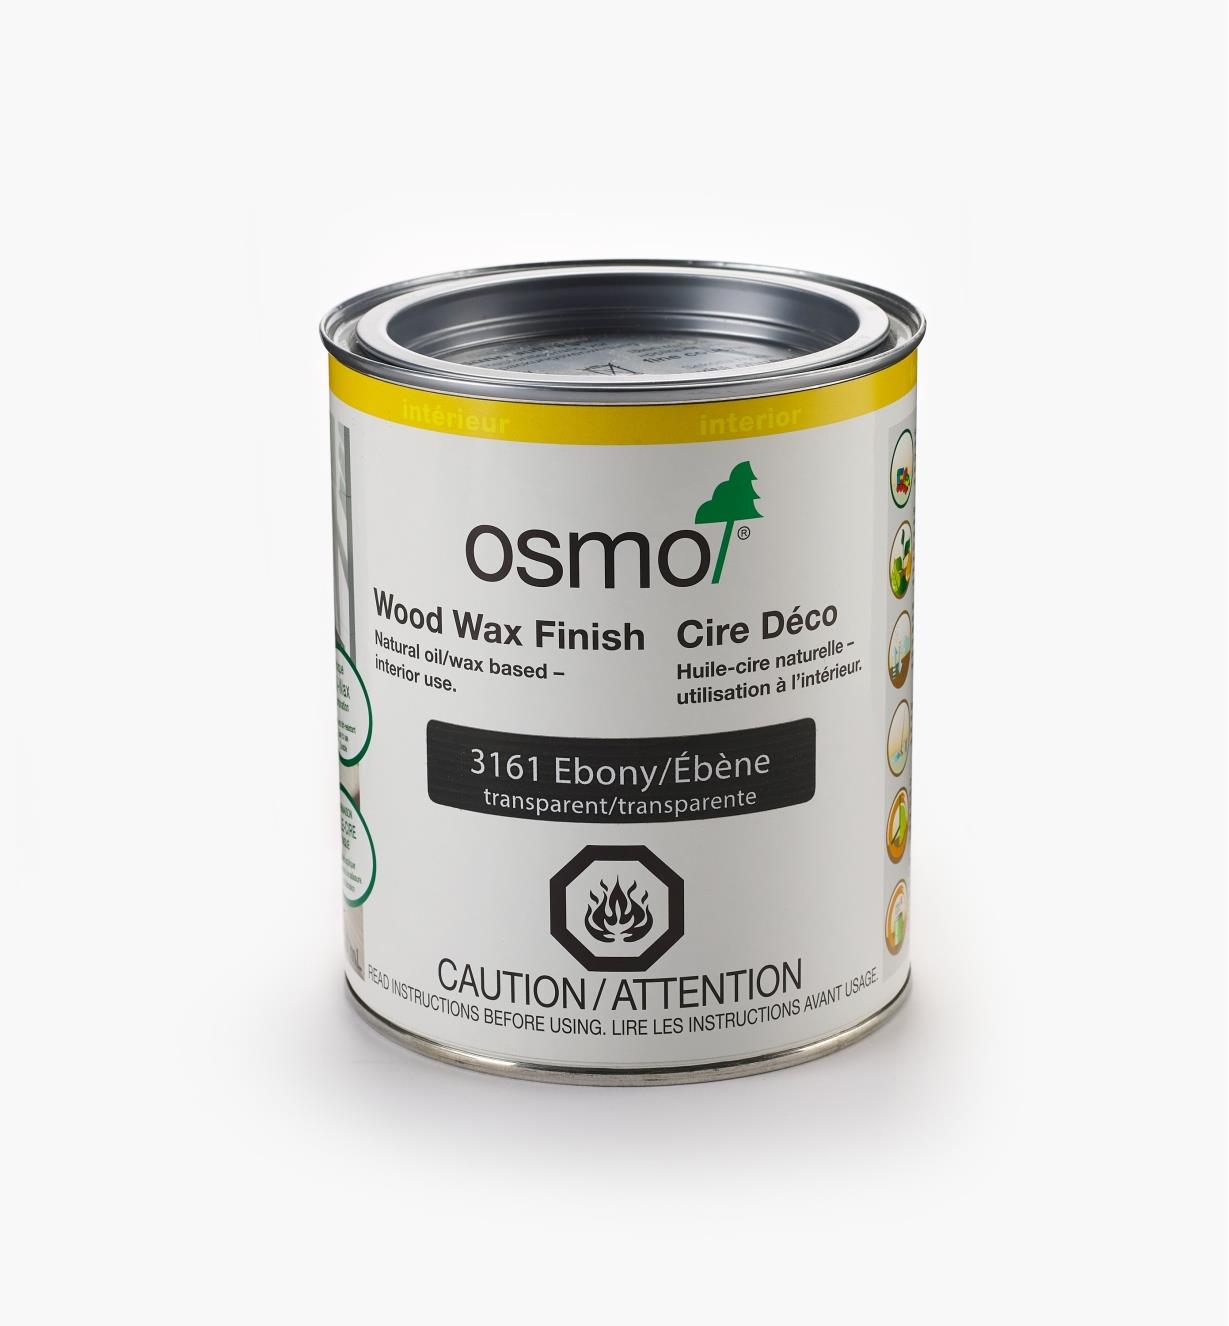 27K2753 - Osmo 3161 Ebony Wood Wax, 750ml (25.5 fl oz)